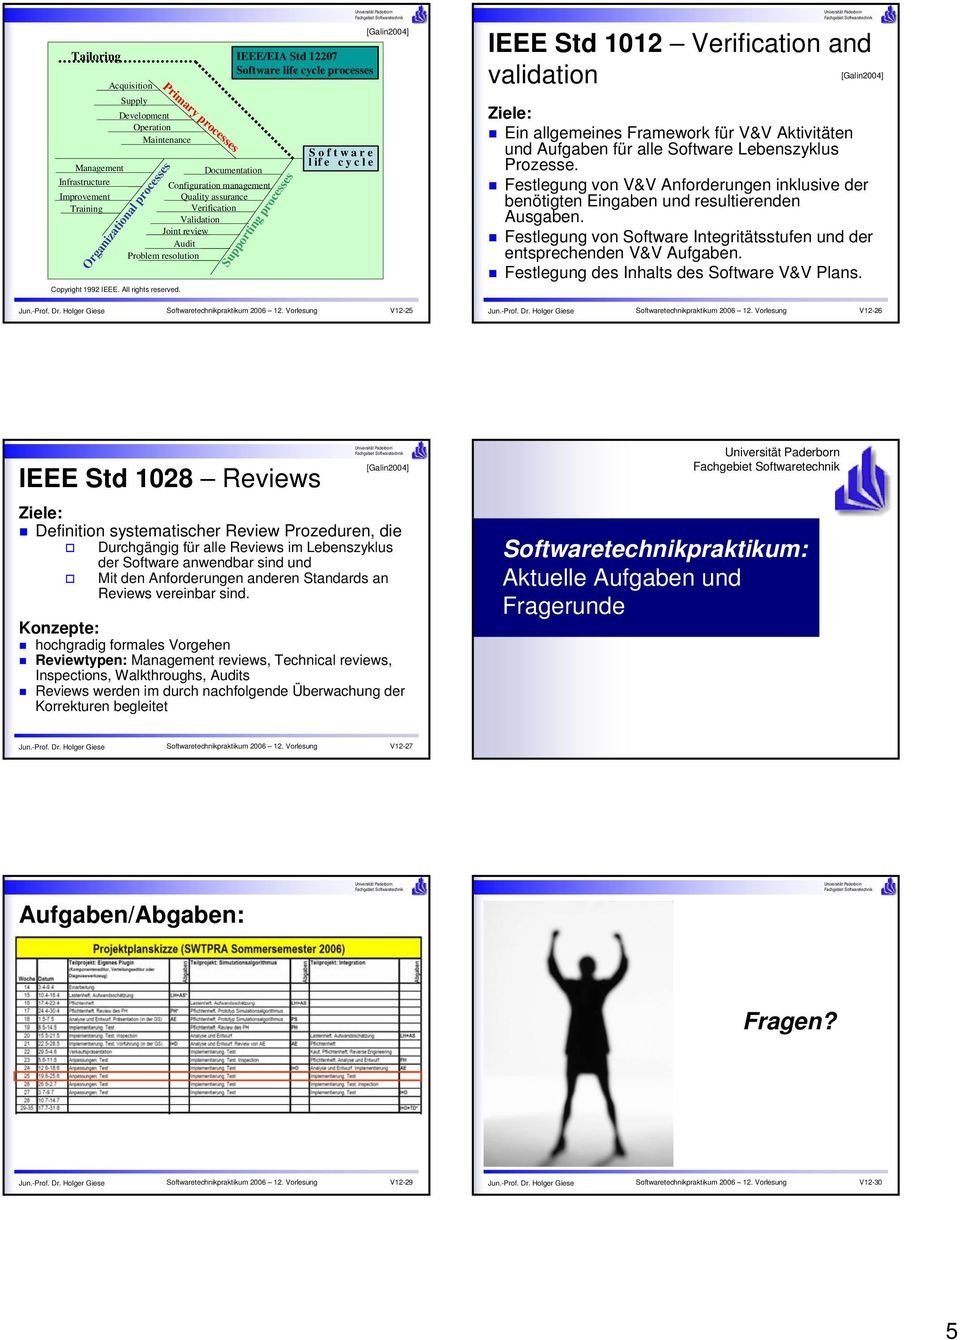 Primary processes IEEE/EIA Std 12207 Software life cycle processes Supporting processes S o f t w a r e l if e c y c l e IEEE Std 1012 Verification and validation Ein allgemeines Framework für V&V